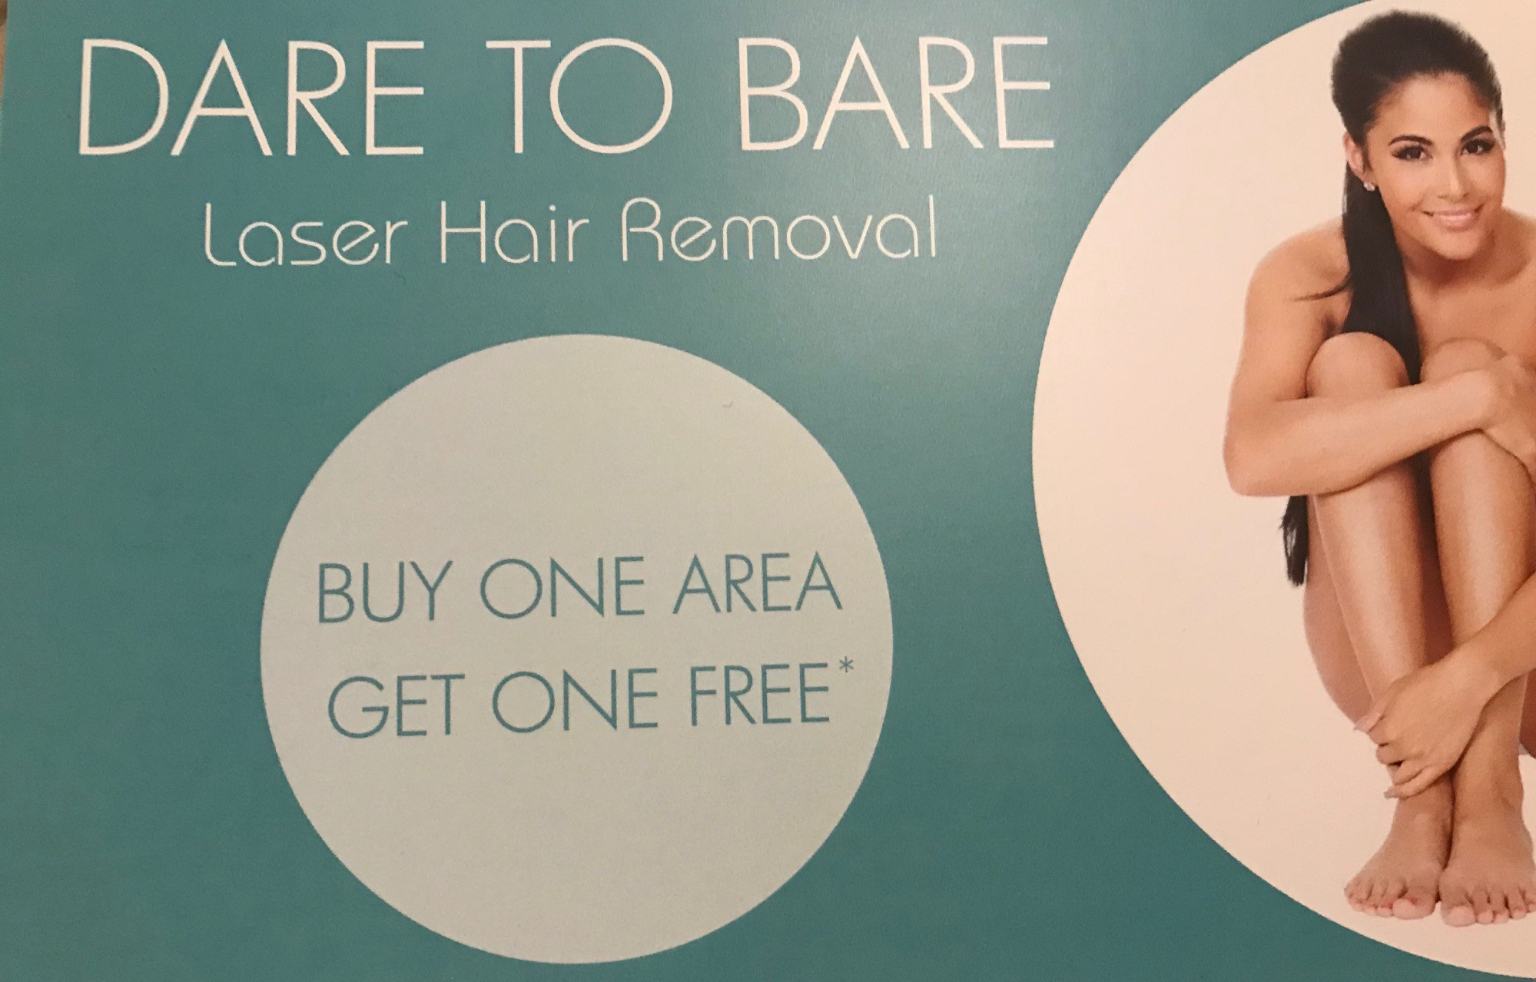 information about laser hair removal